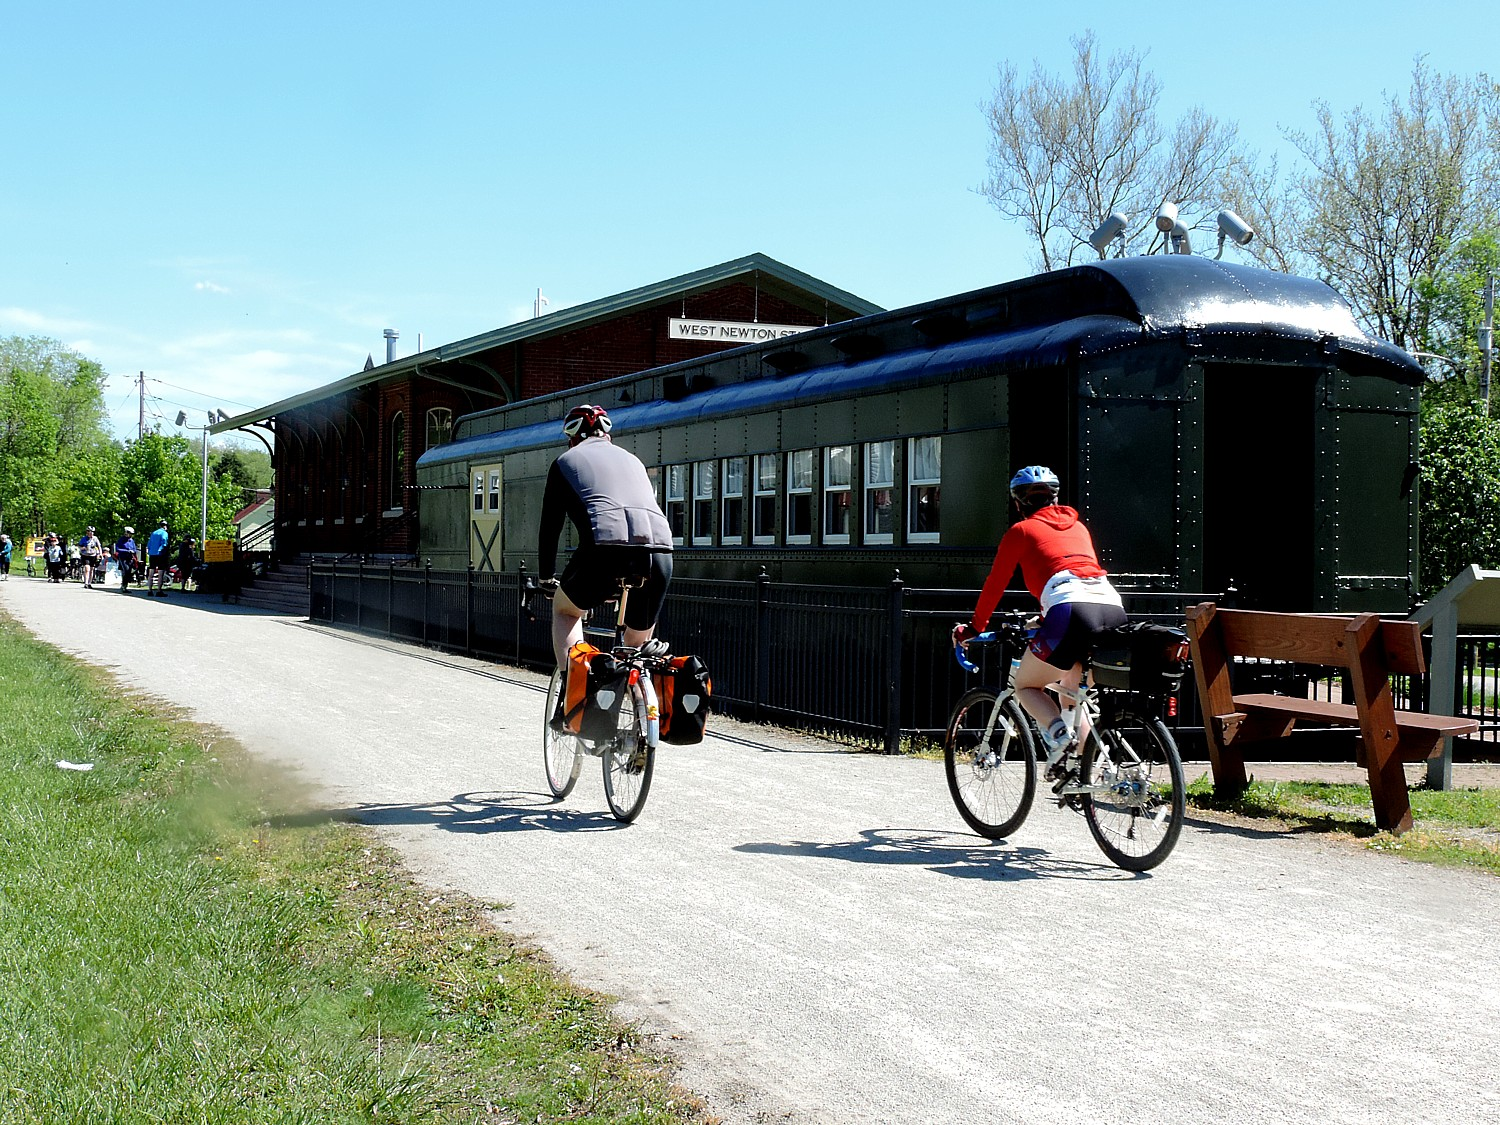 West Newton has a replica of the 1910 P&LE train station, now a historical society and visitors center and retail shop, with a historic train car outside © 2016 Karen Rubin/goingplacesfarandnear.com